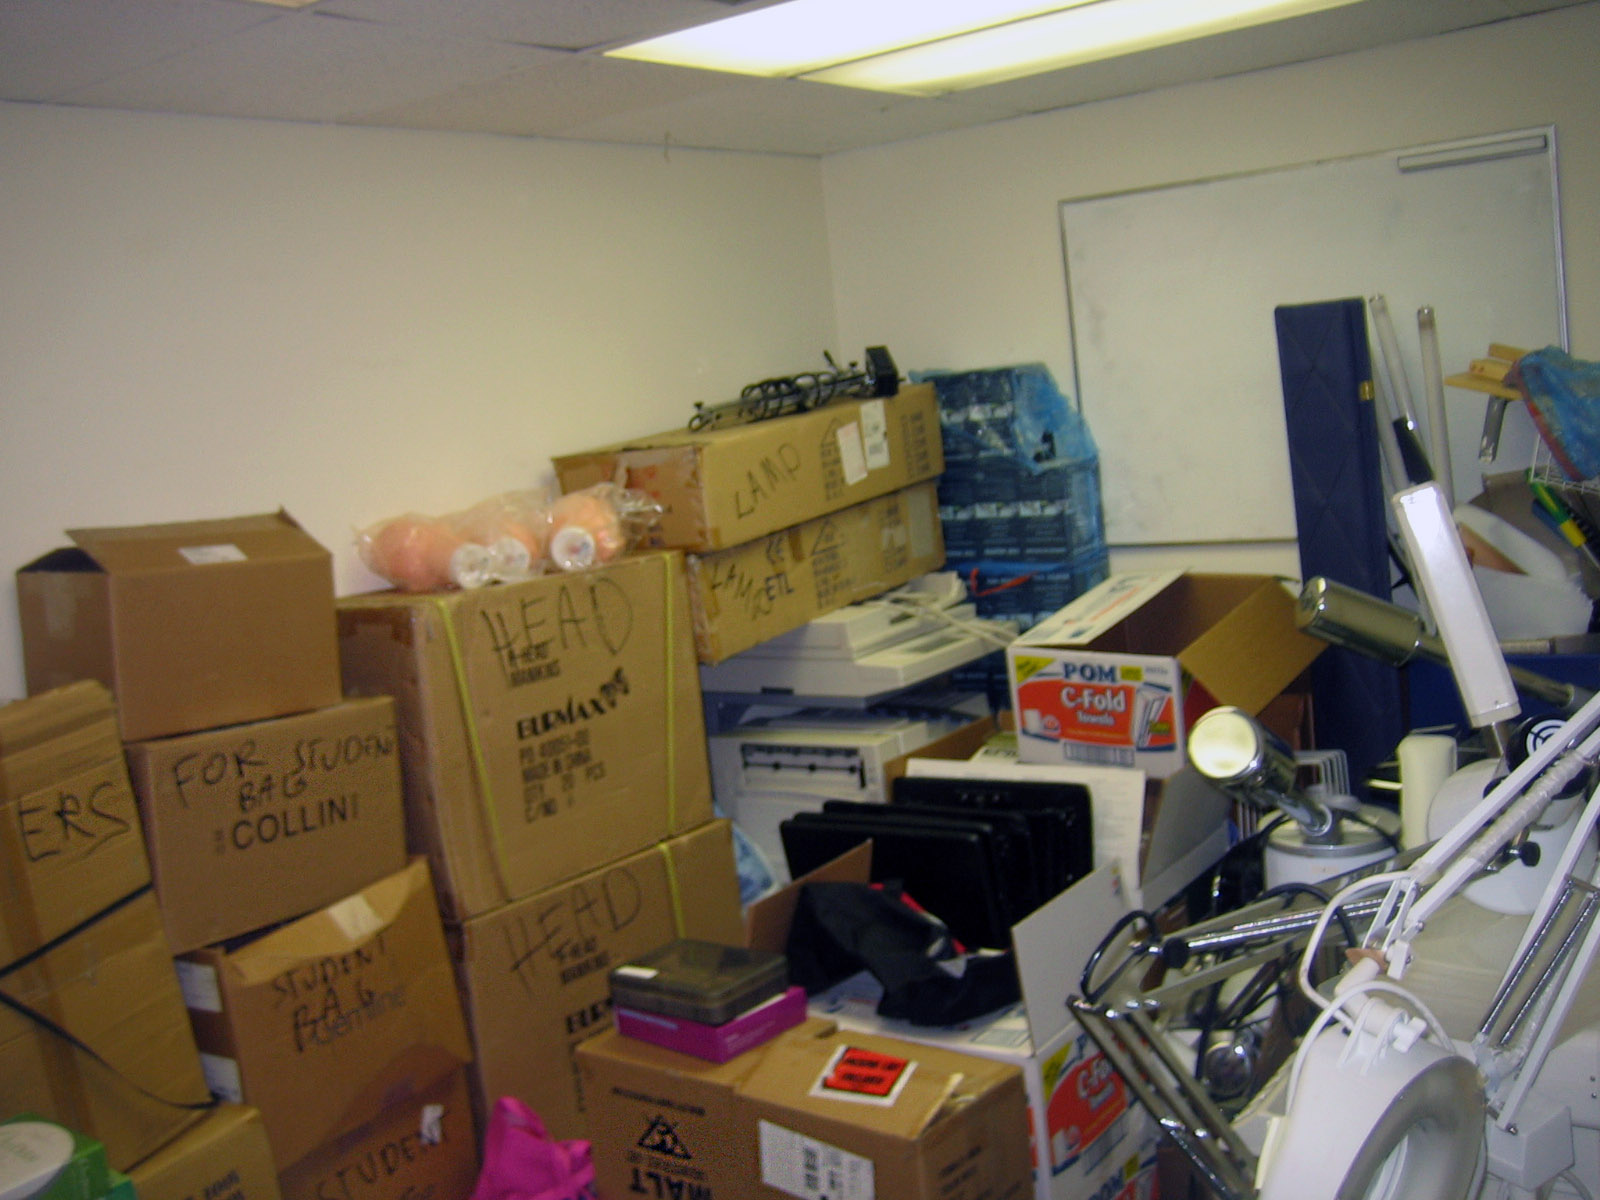 Boxes and office supplies in storage